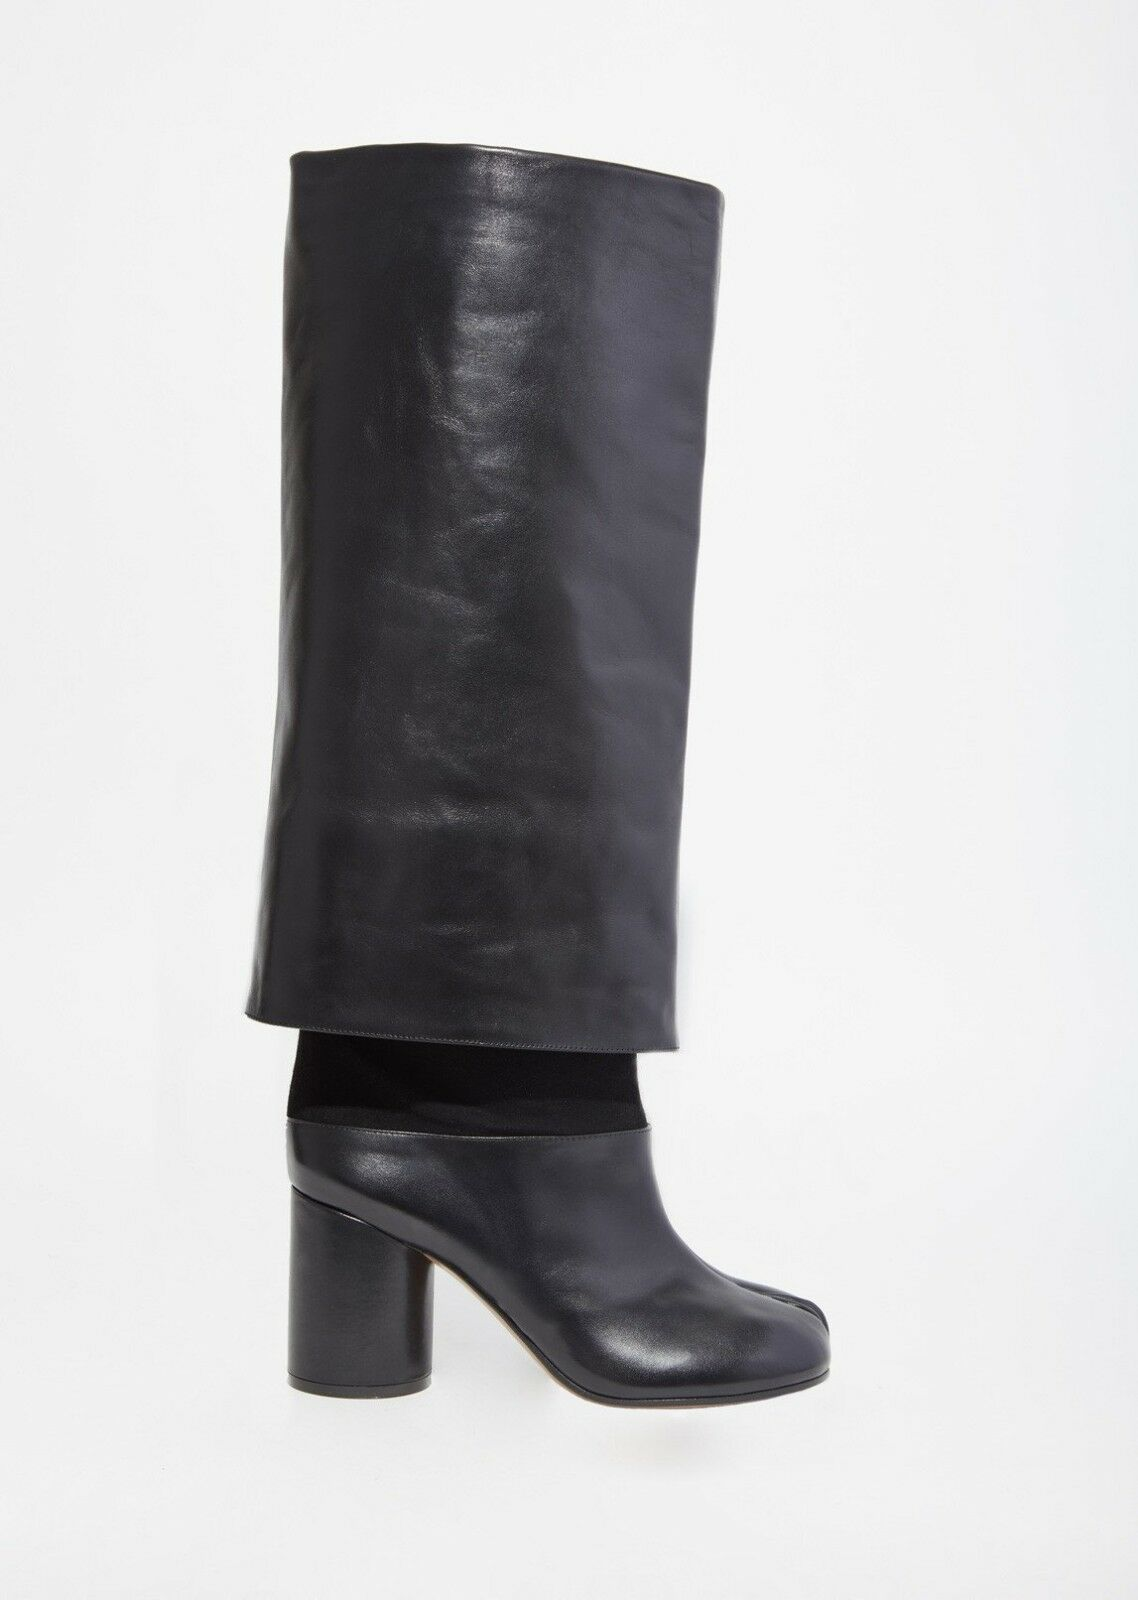 Brand New MAISON MARGIELA tall tabi Boots size 7 and 8